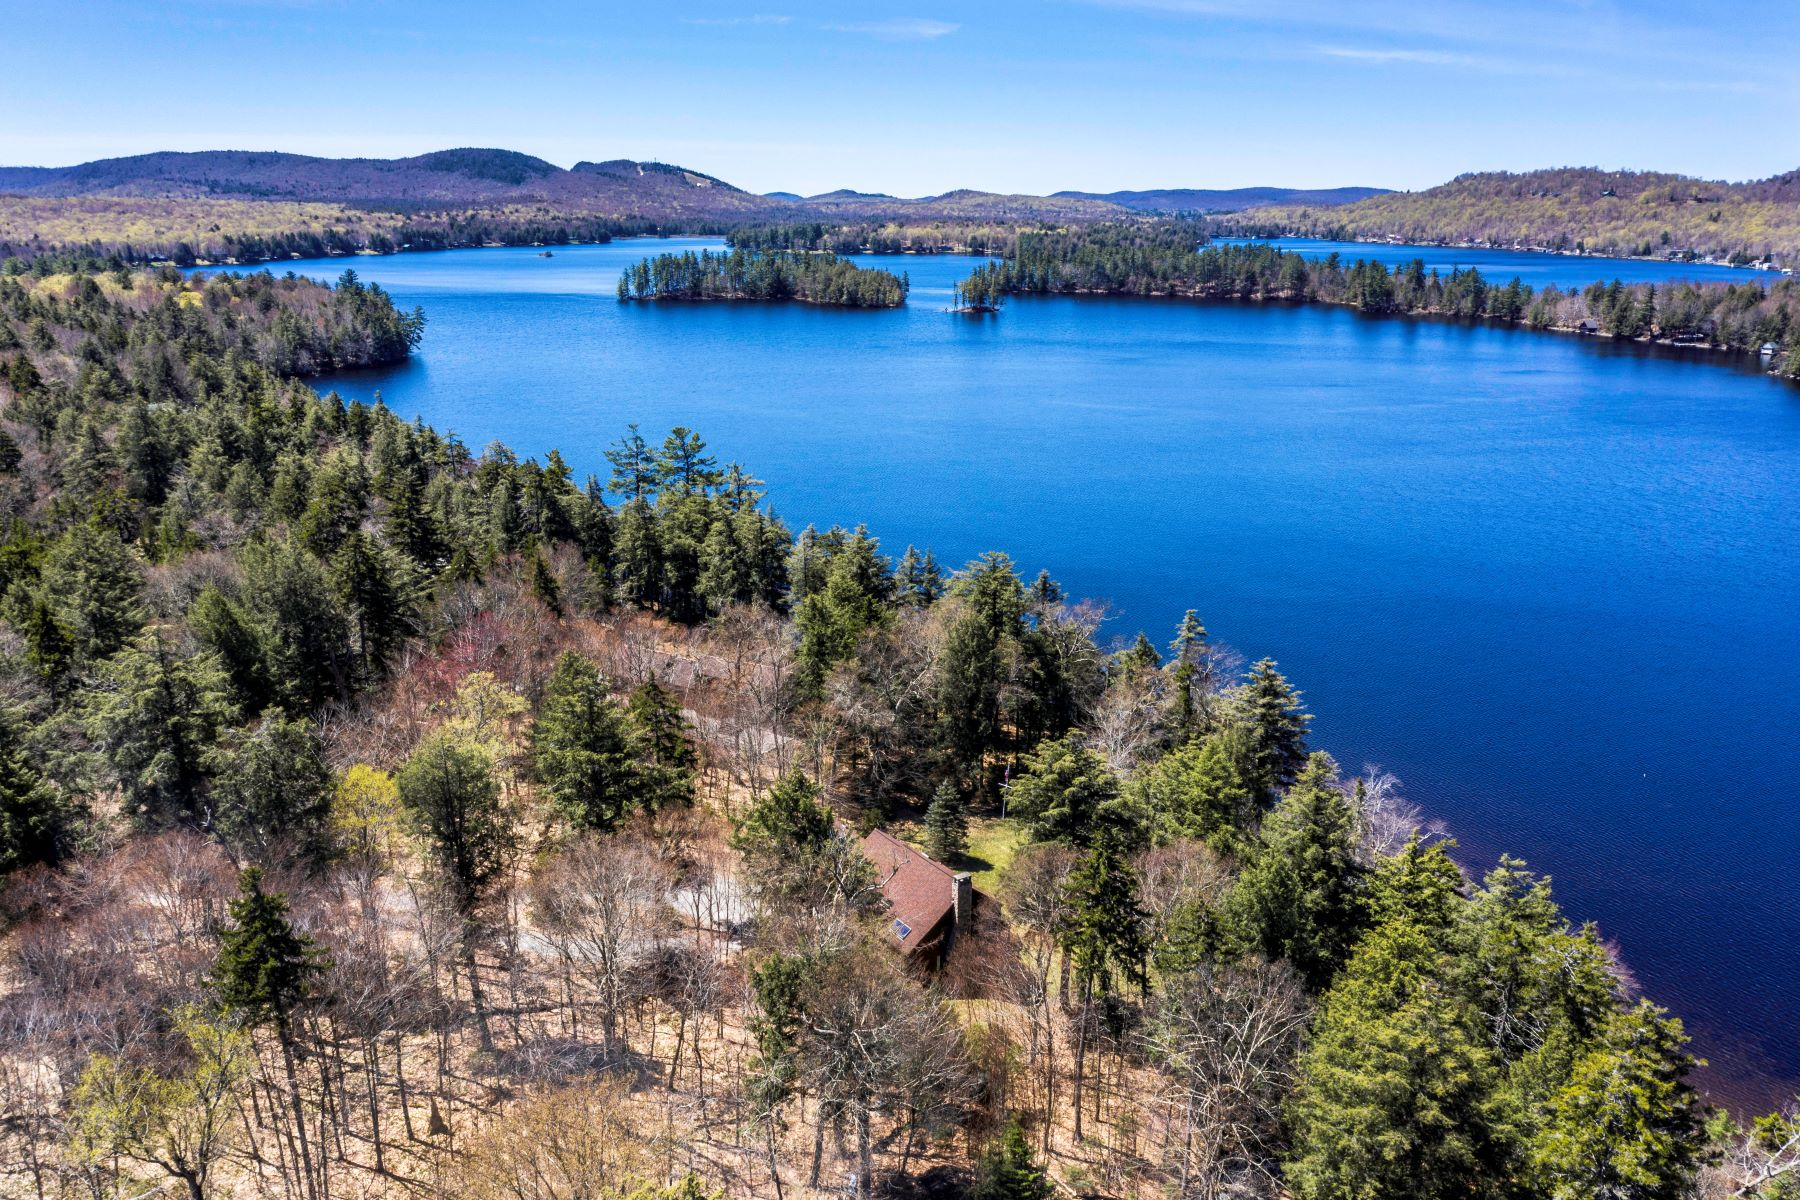 Single Family Homes for Active at Timberpeg Post and Beam Estate on Second Lake 205 Pine Acres Road Second Lake Old Forge, New York 13420 United States